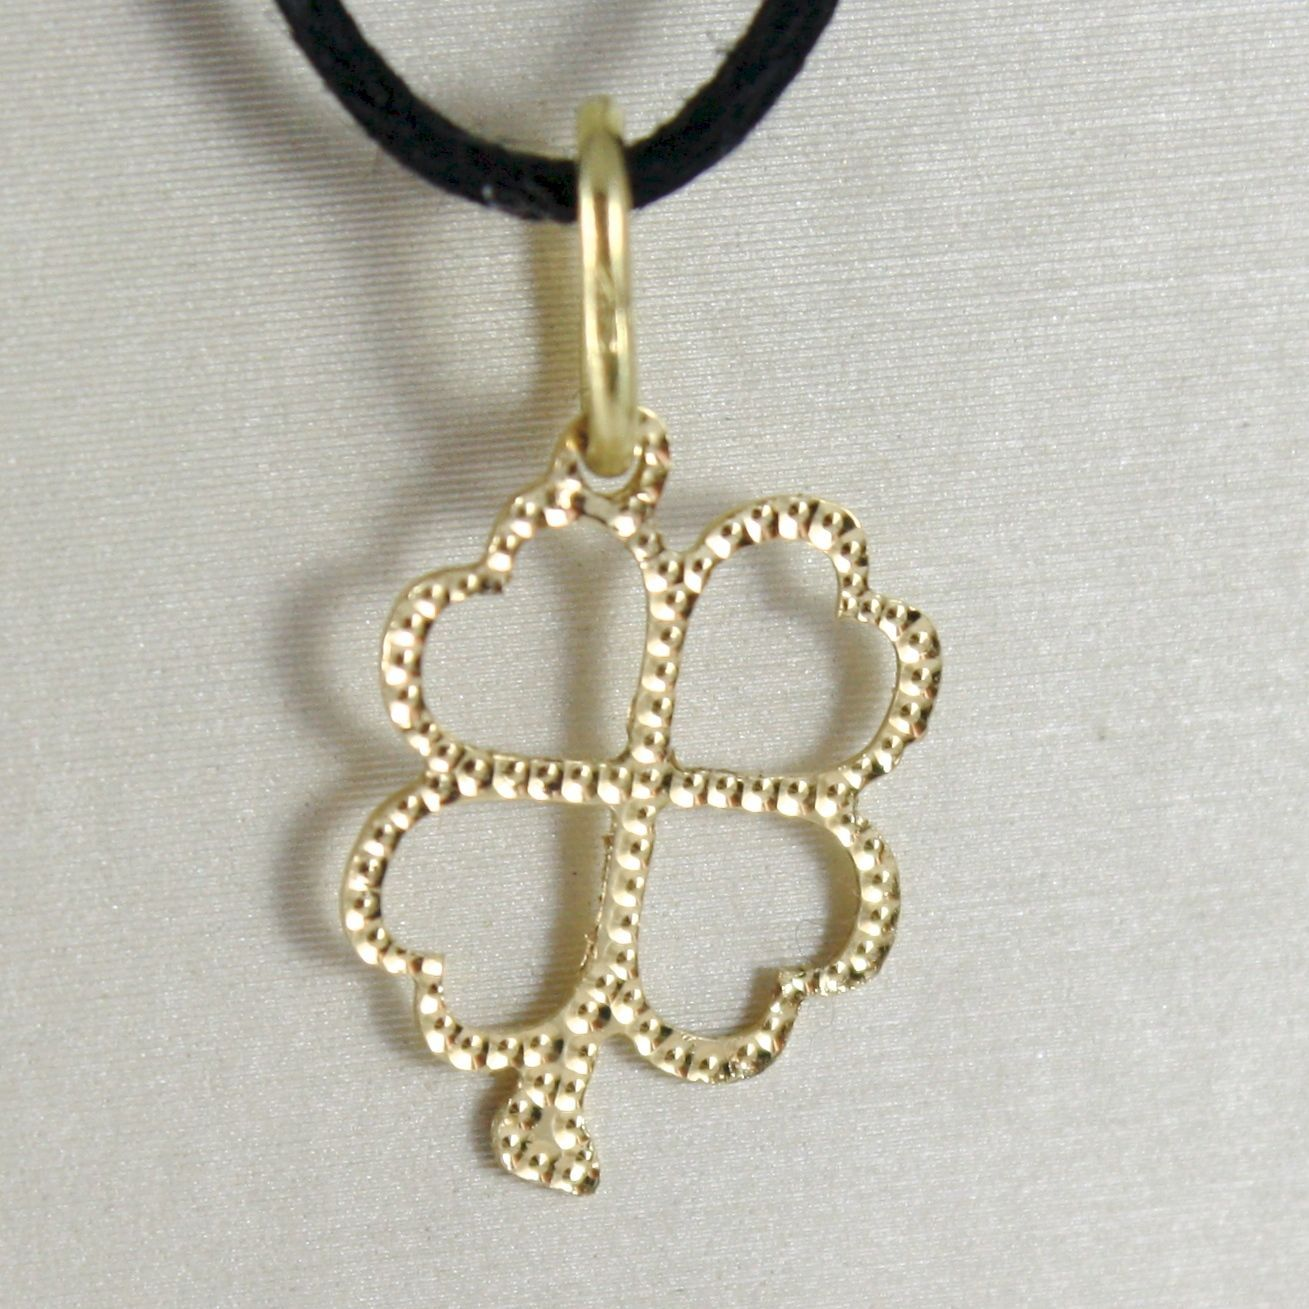 YELLOW GOLD PENDANT 750 18K FOUR-LEAF CLOVER PENDANT, MILLED BUBBLES, LONG 2 CM